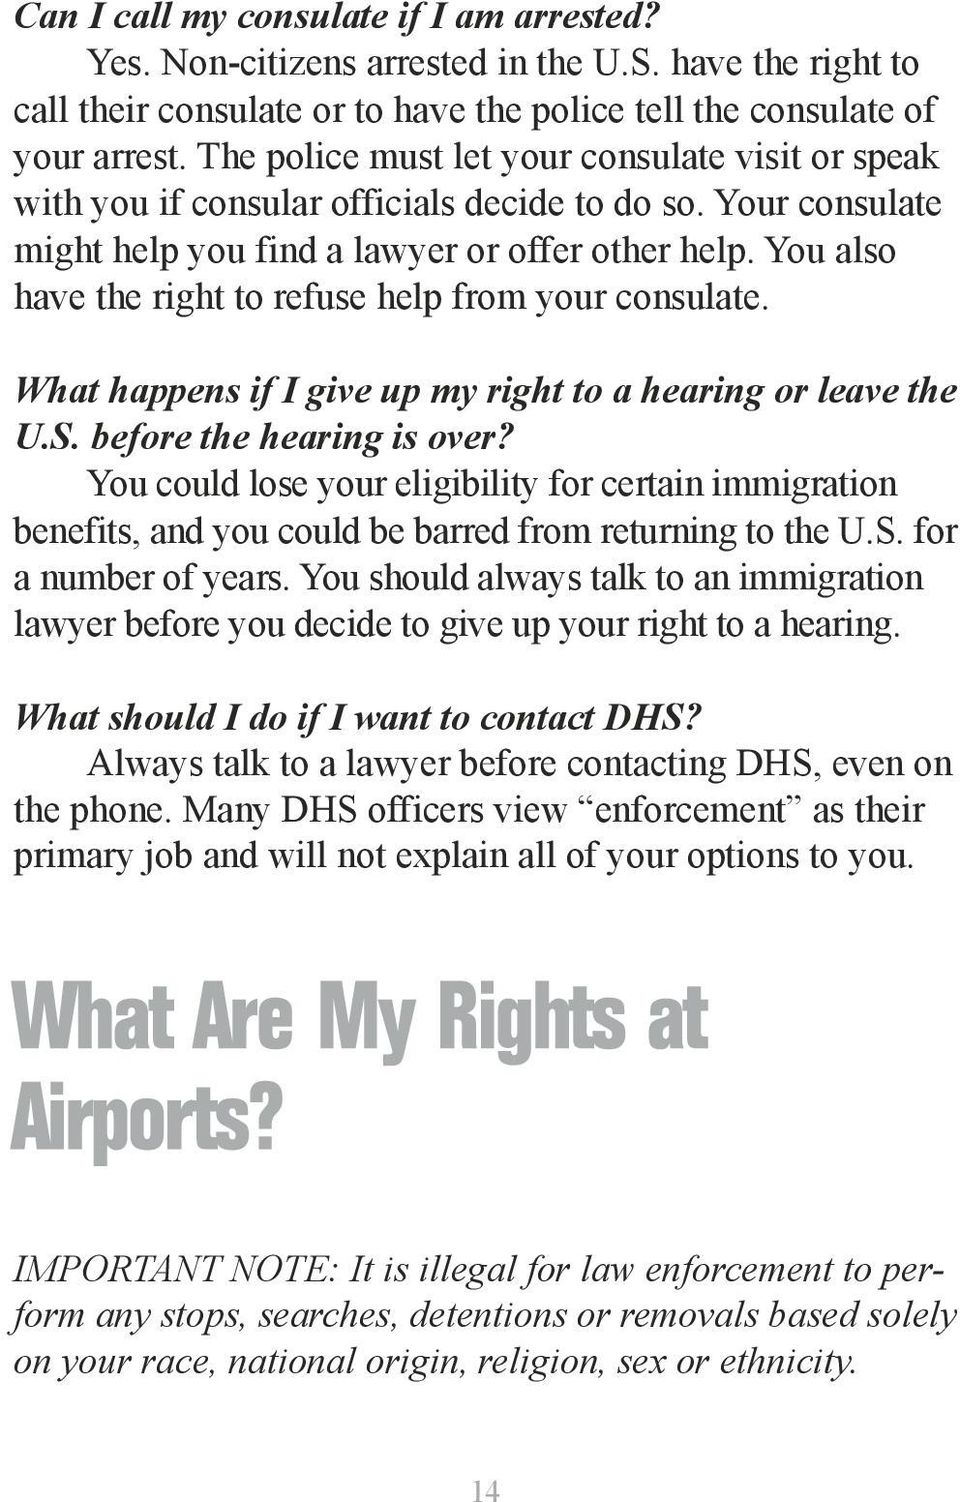 You also have the right to refuse help from your consulate. What happens if I give up my right to a hearing or leave the U.S. before the hearing is over?